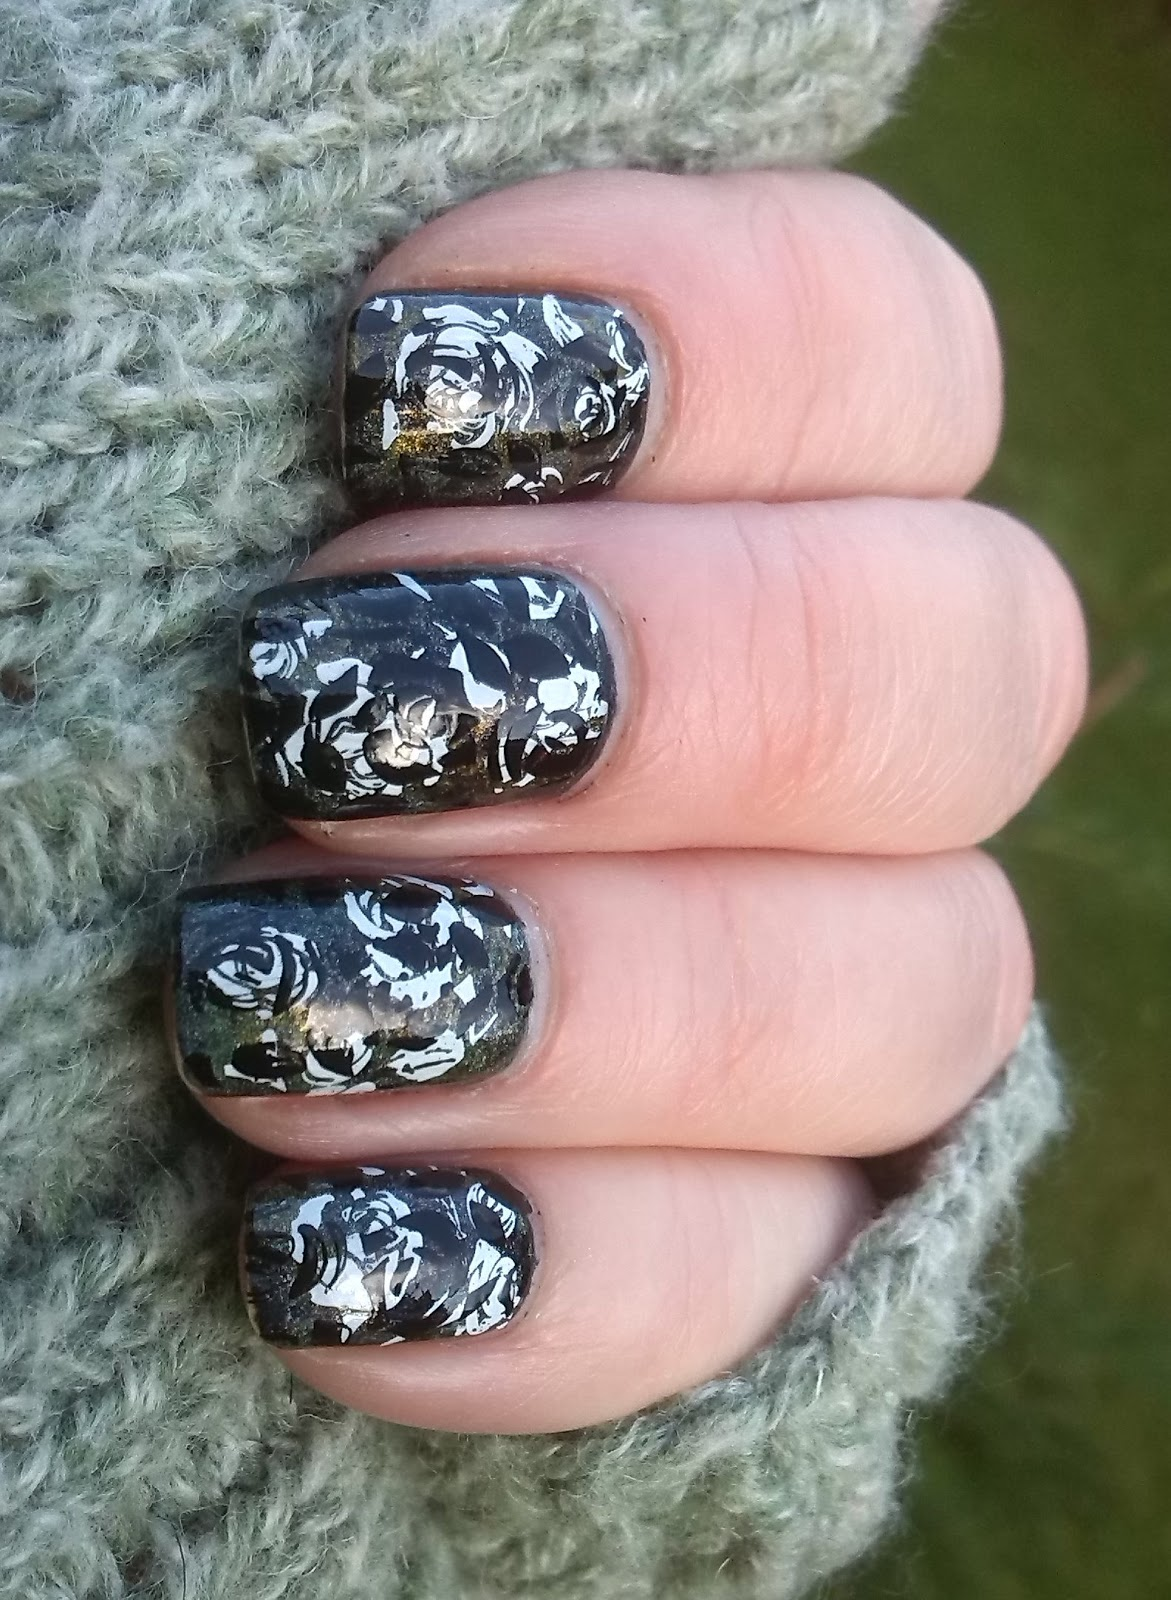 Moyou London Kitty 14 and Pro XL 10 double stamping